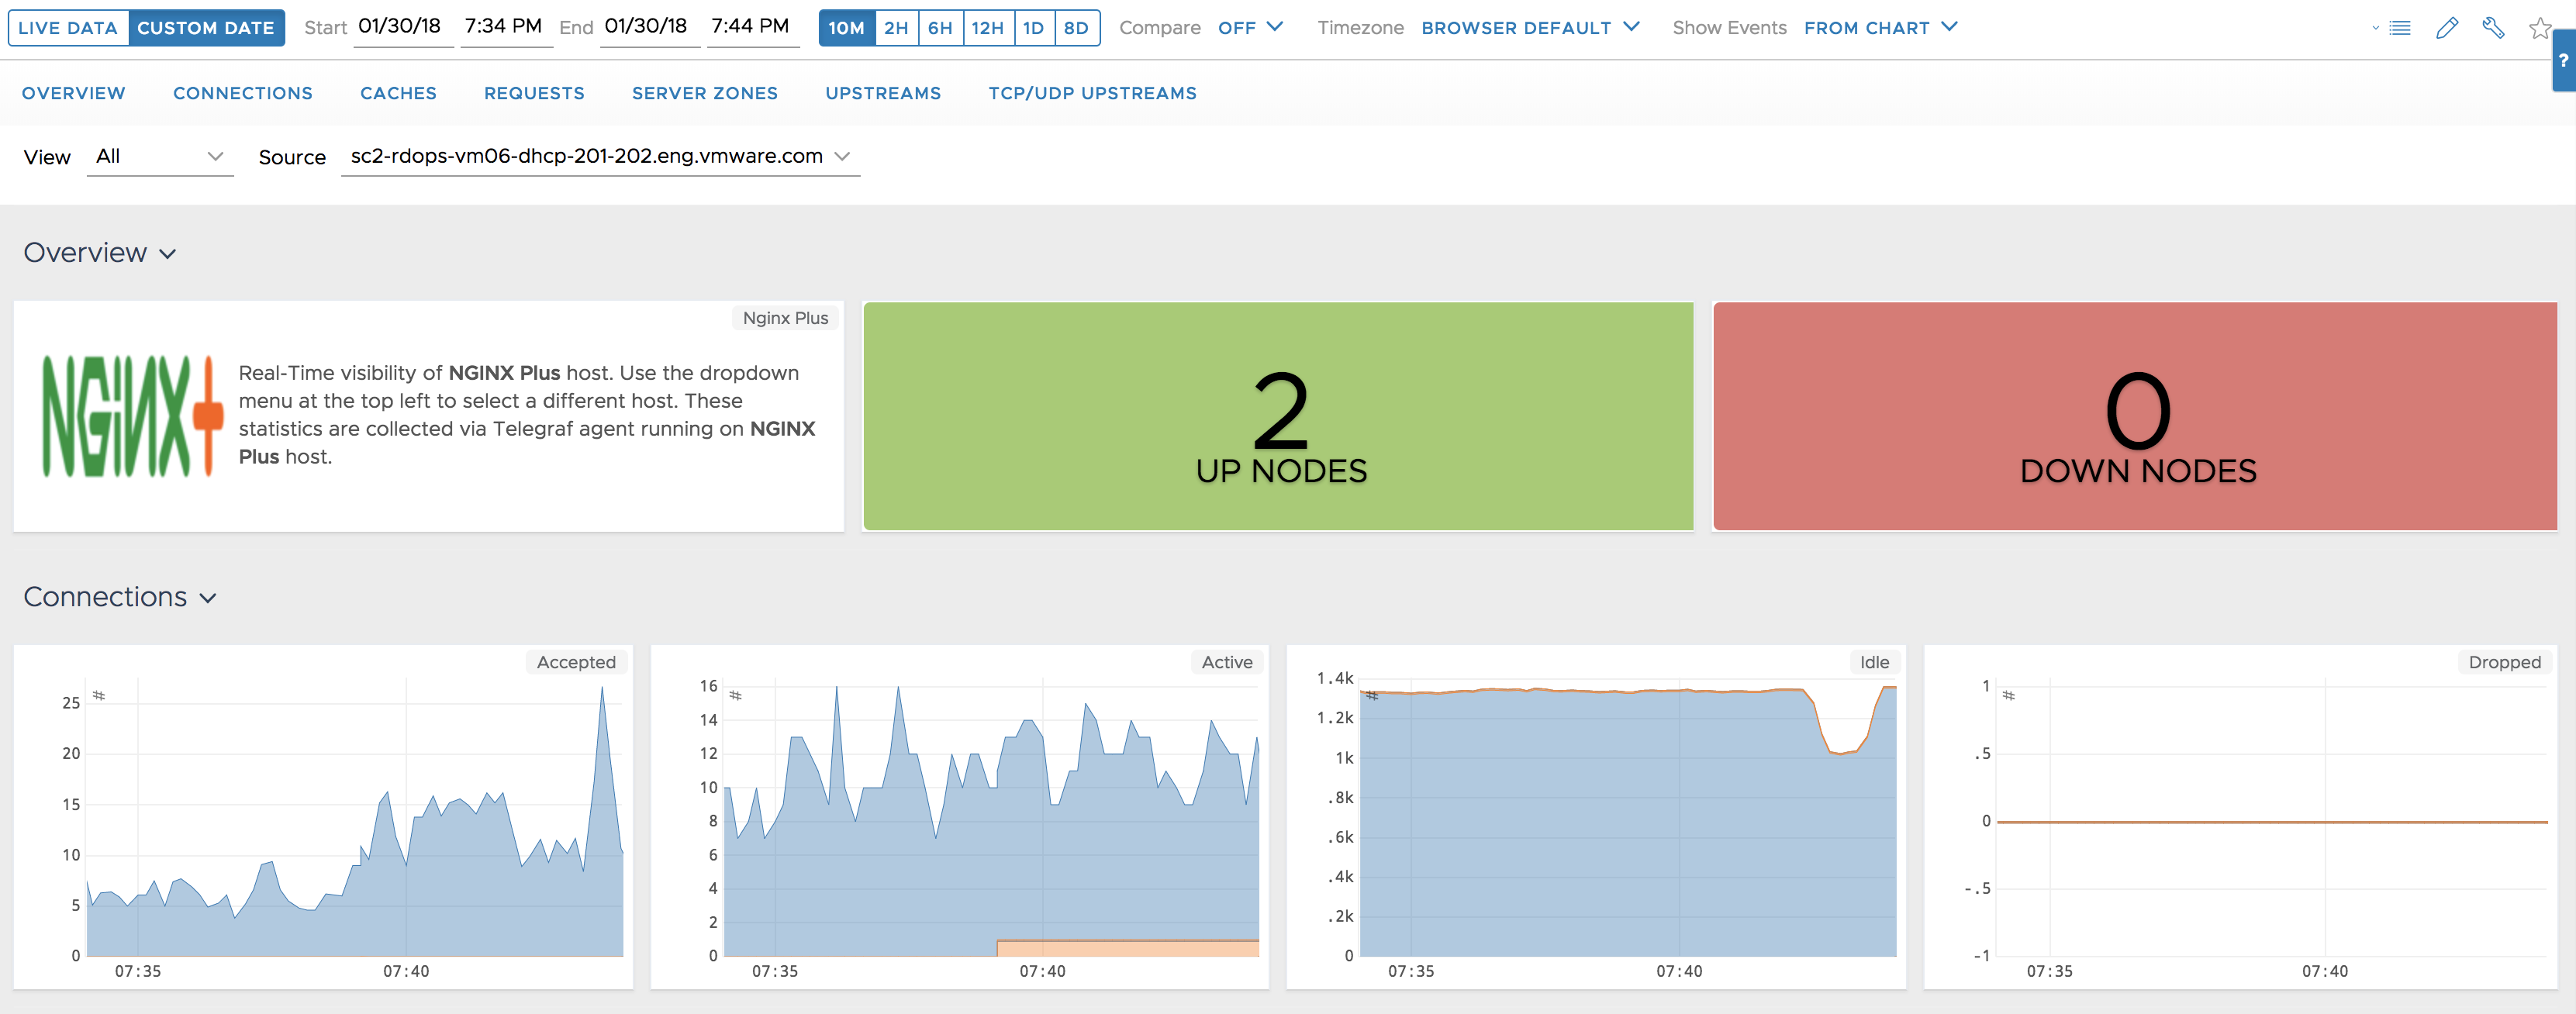 images/nginxp_dashboard1.png